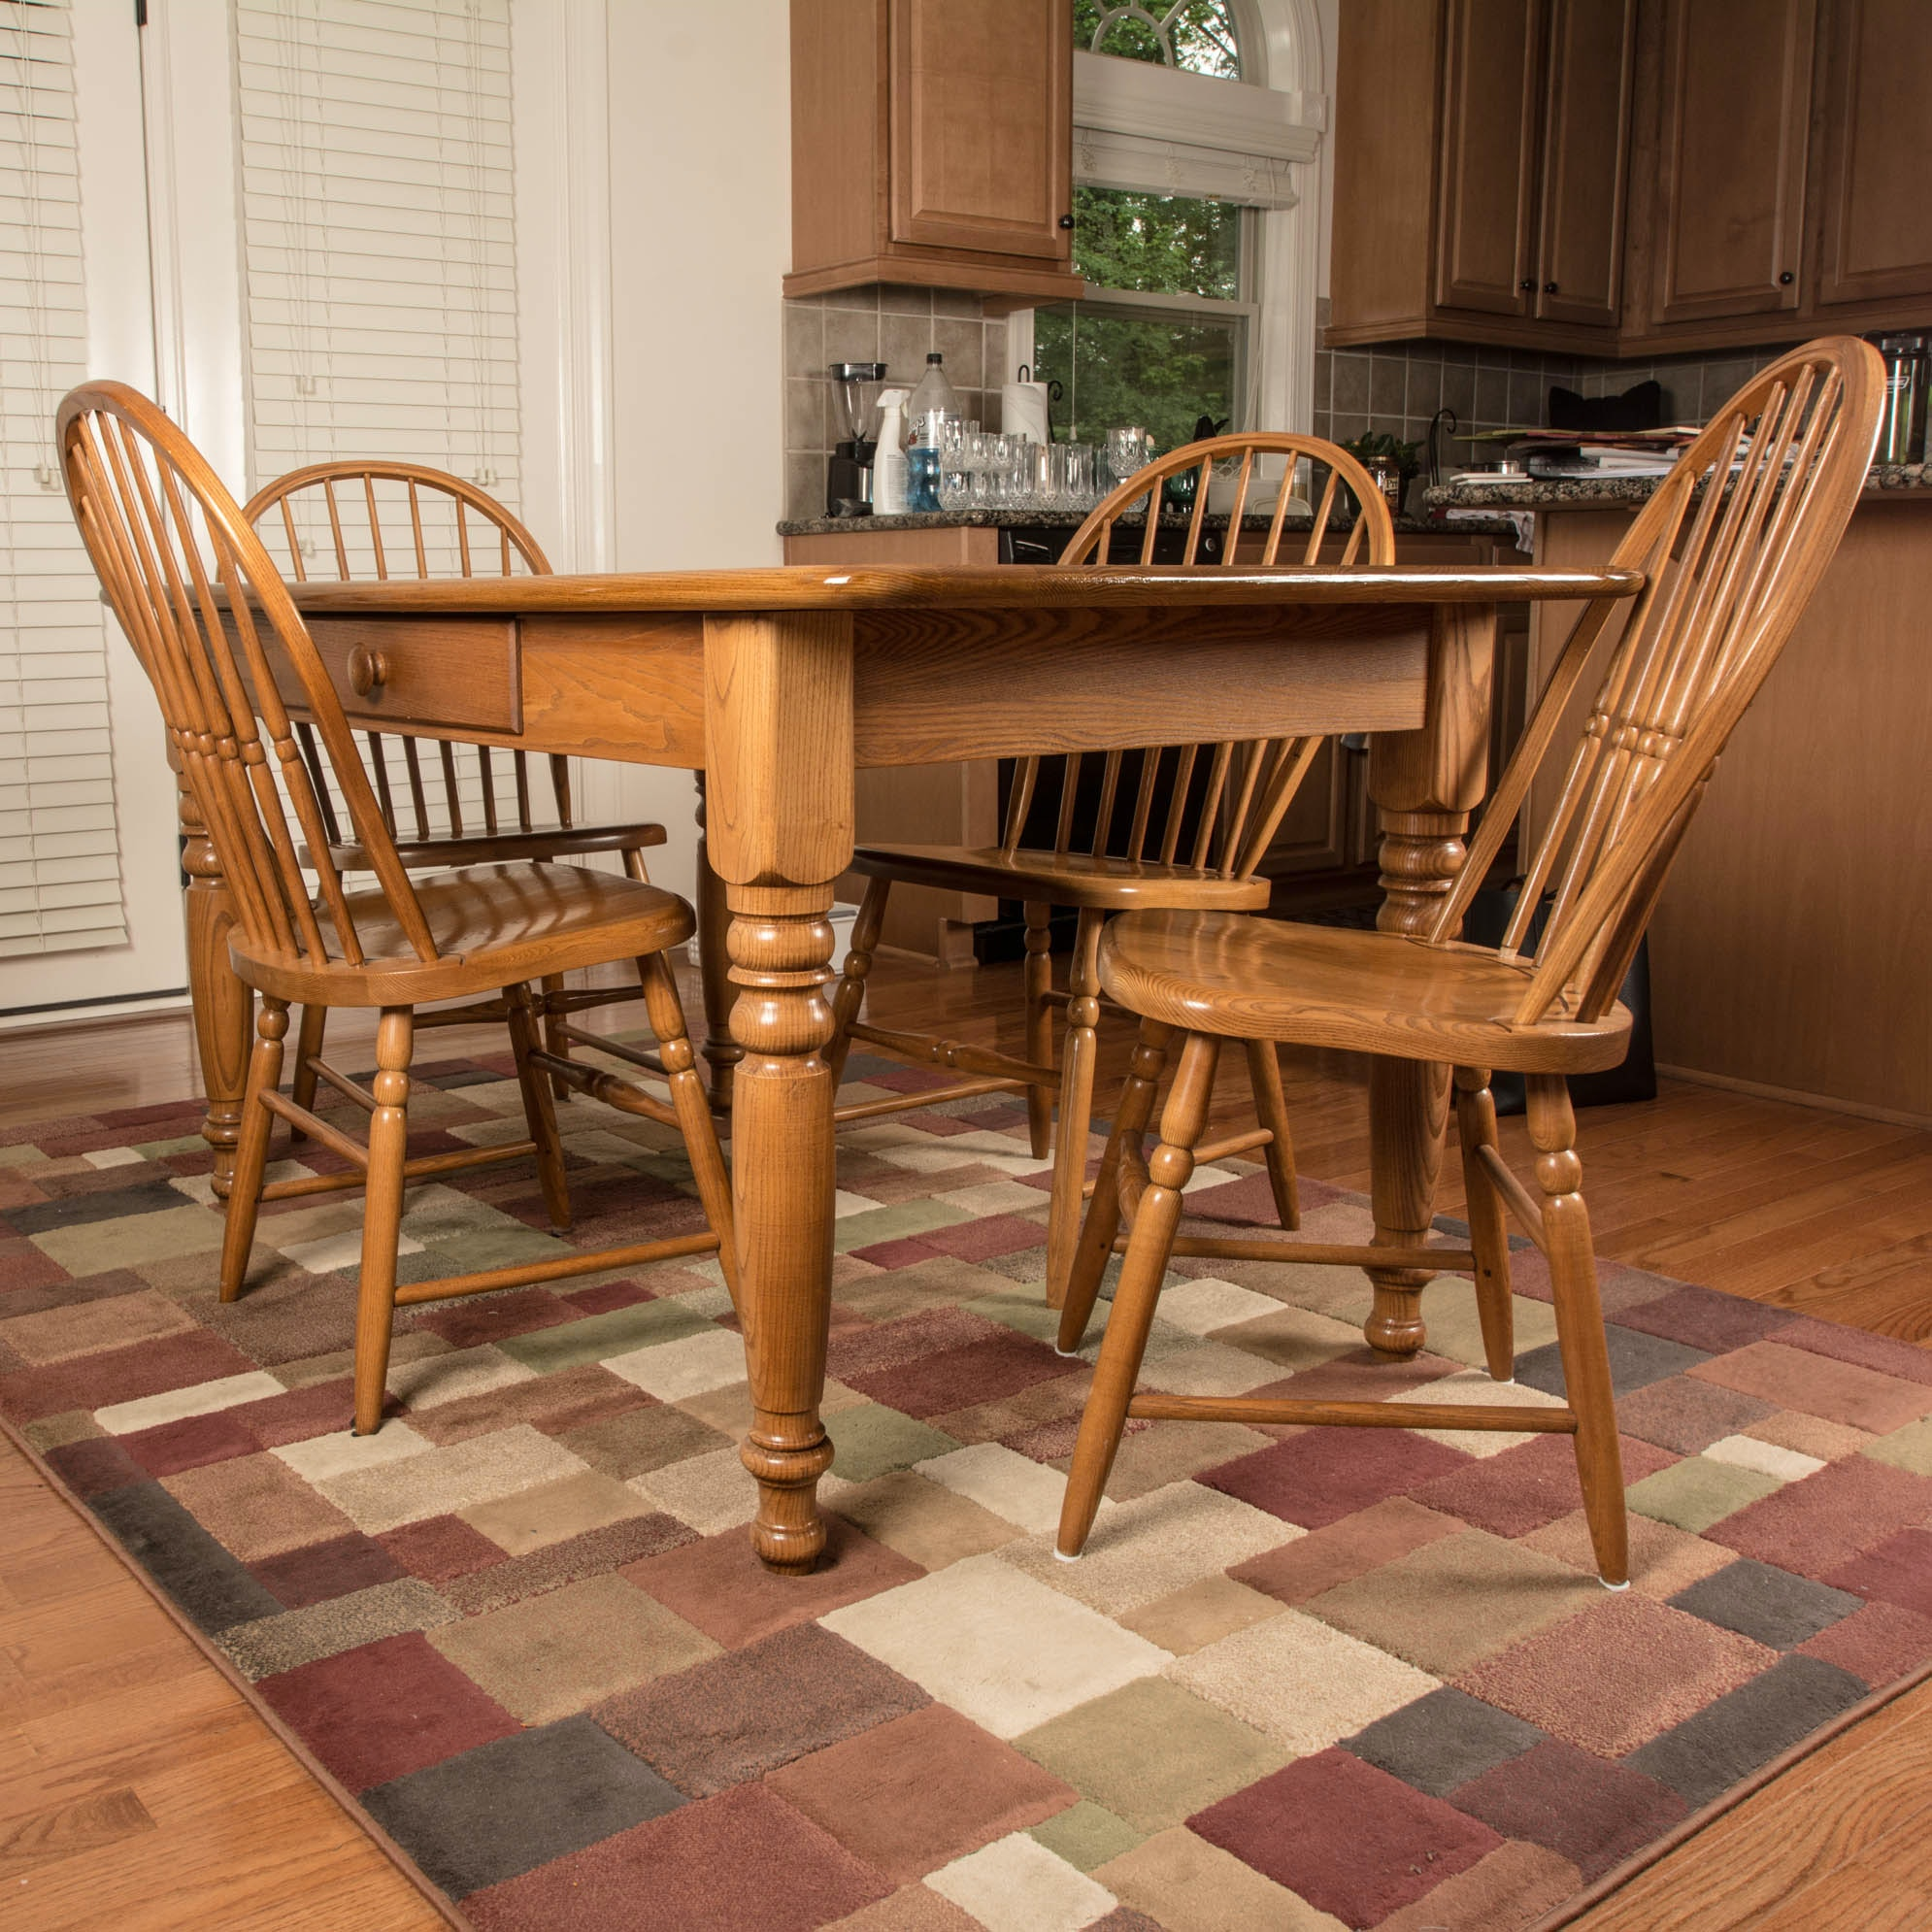 S Bent & Bros Oak Farmhouse Style Dining Room Table and Chairs EBTH